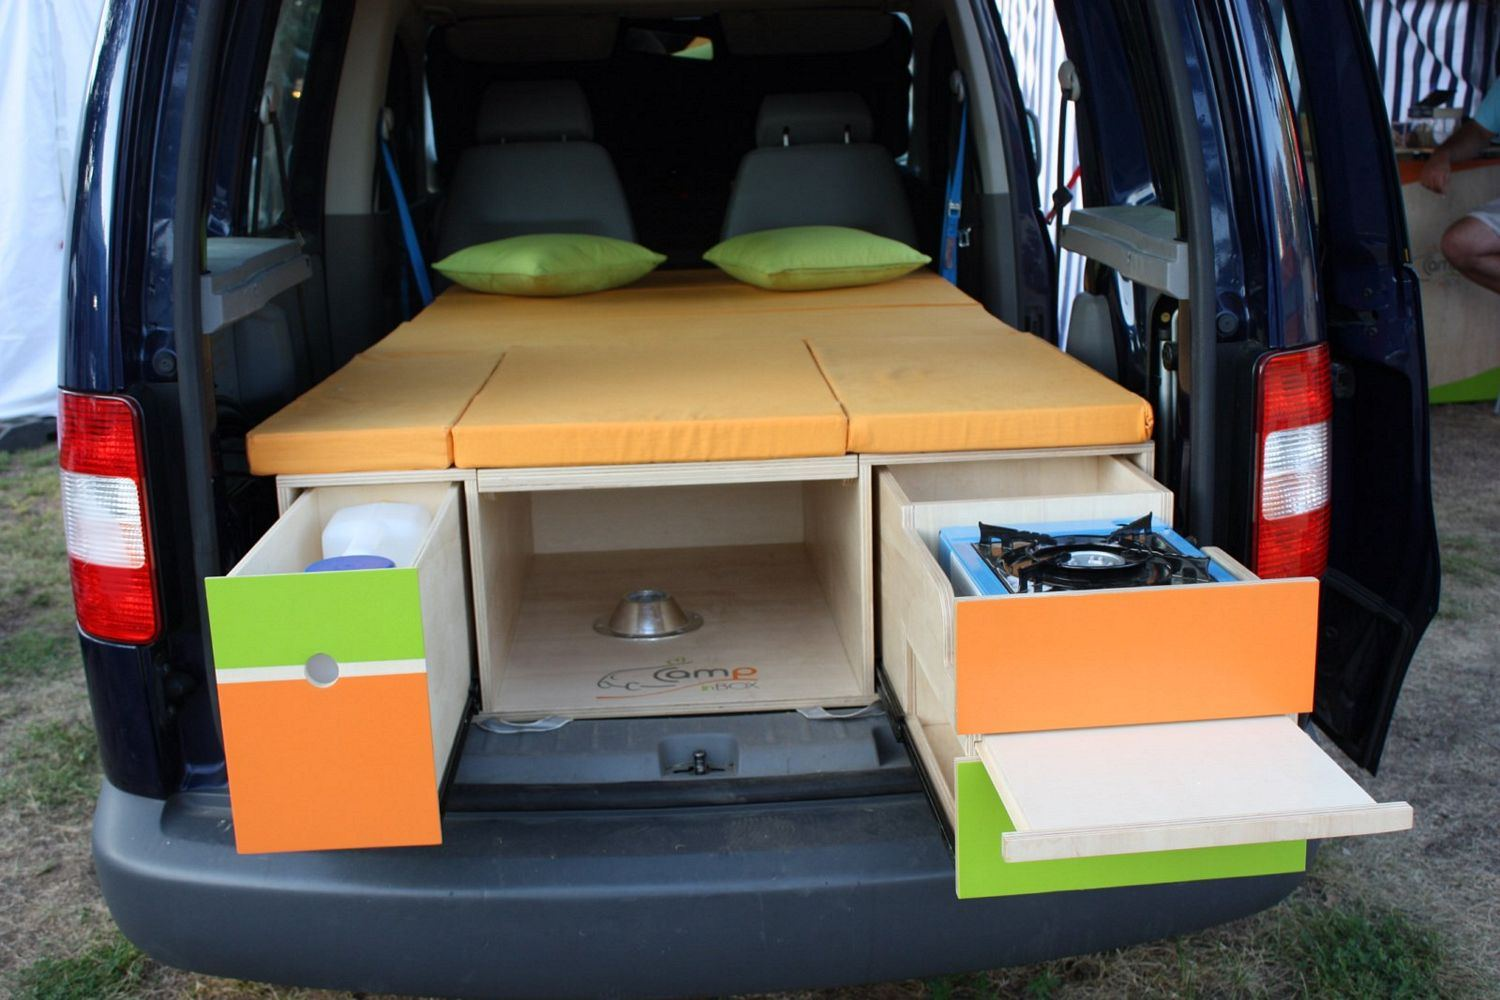 Amenagement d un kangoo en camping car